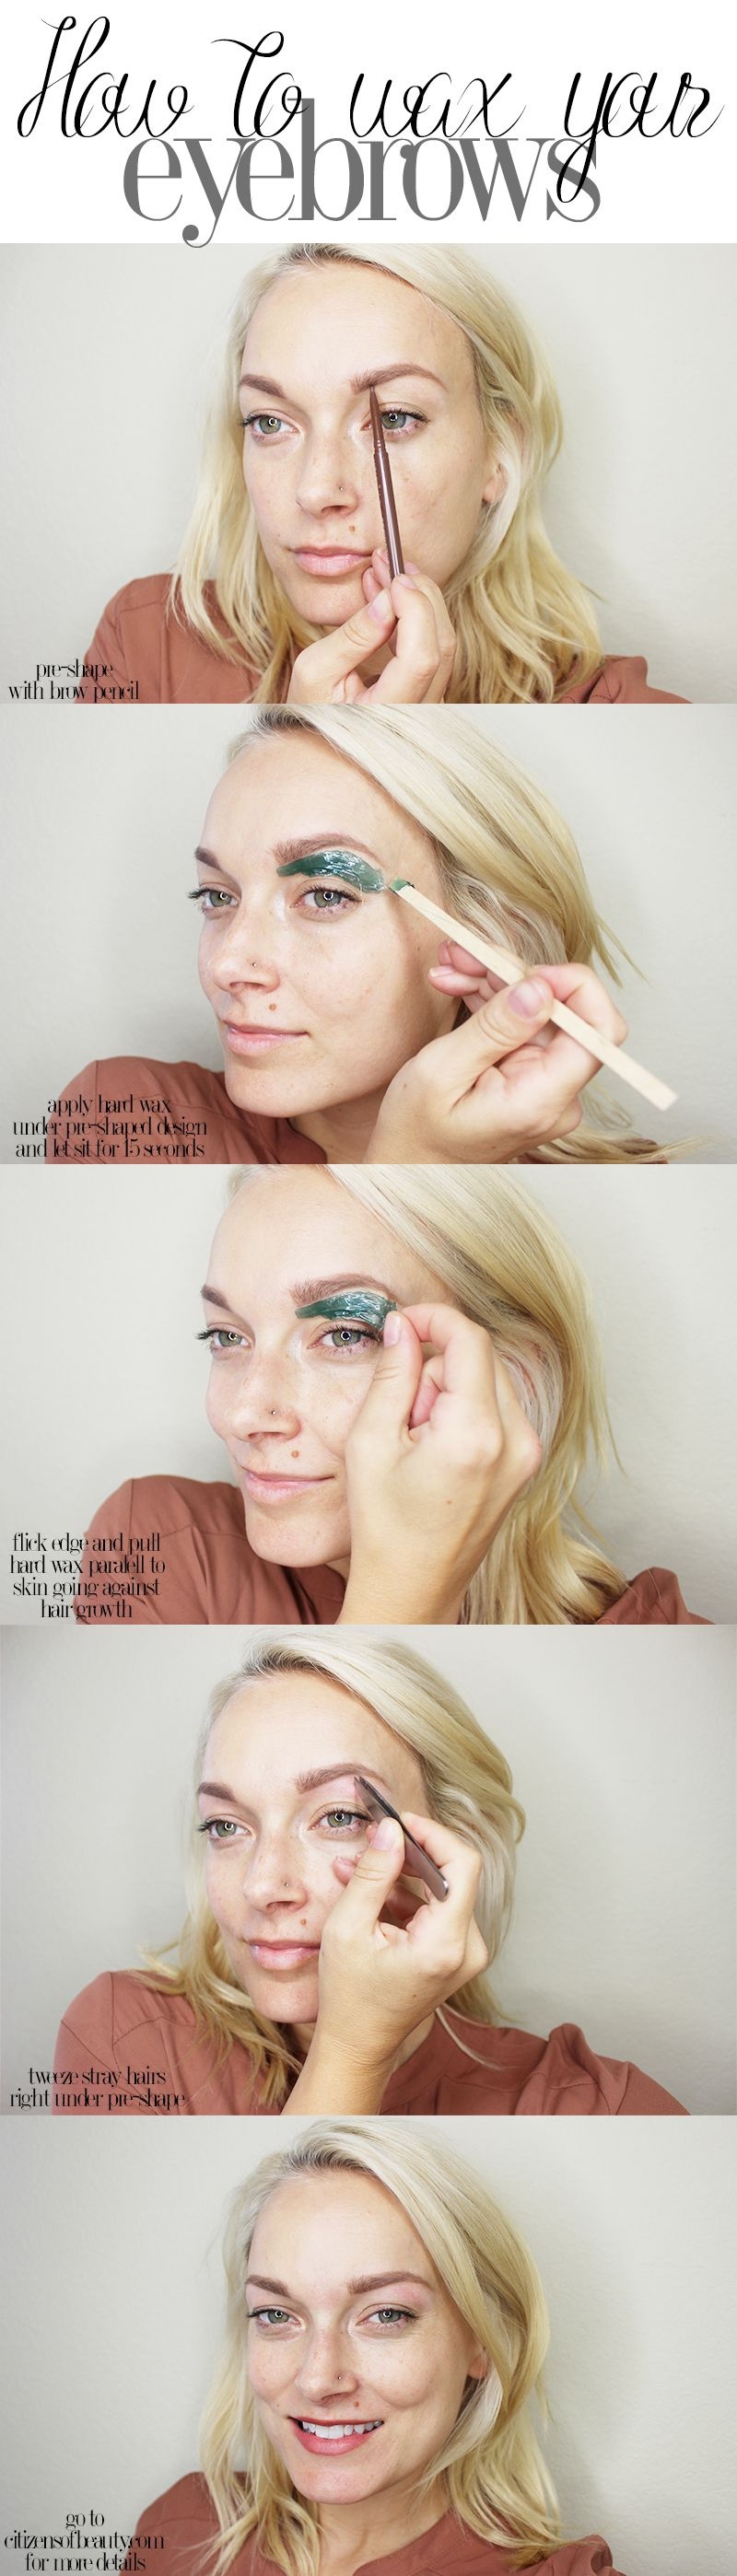 How to Wax Your Eyebrows at Home | Eyebrows, Beauty ...